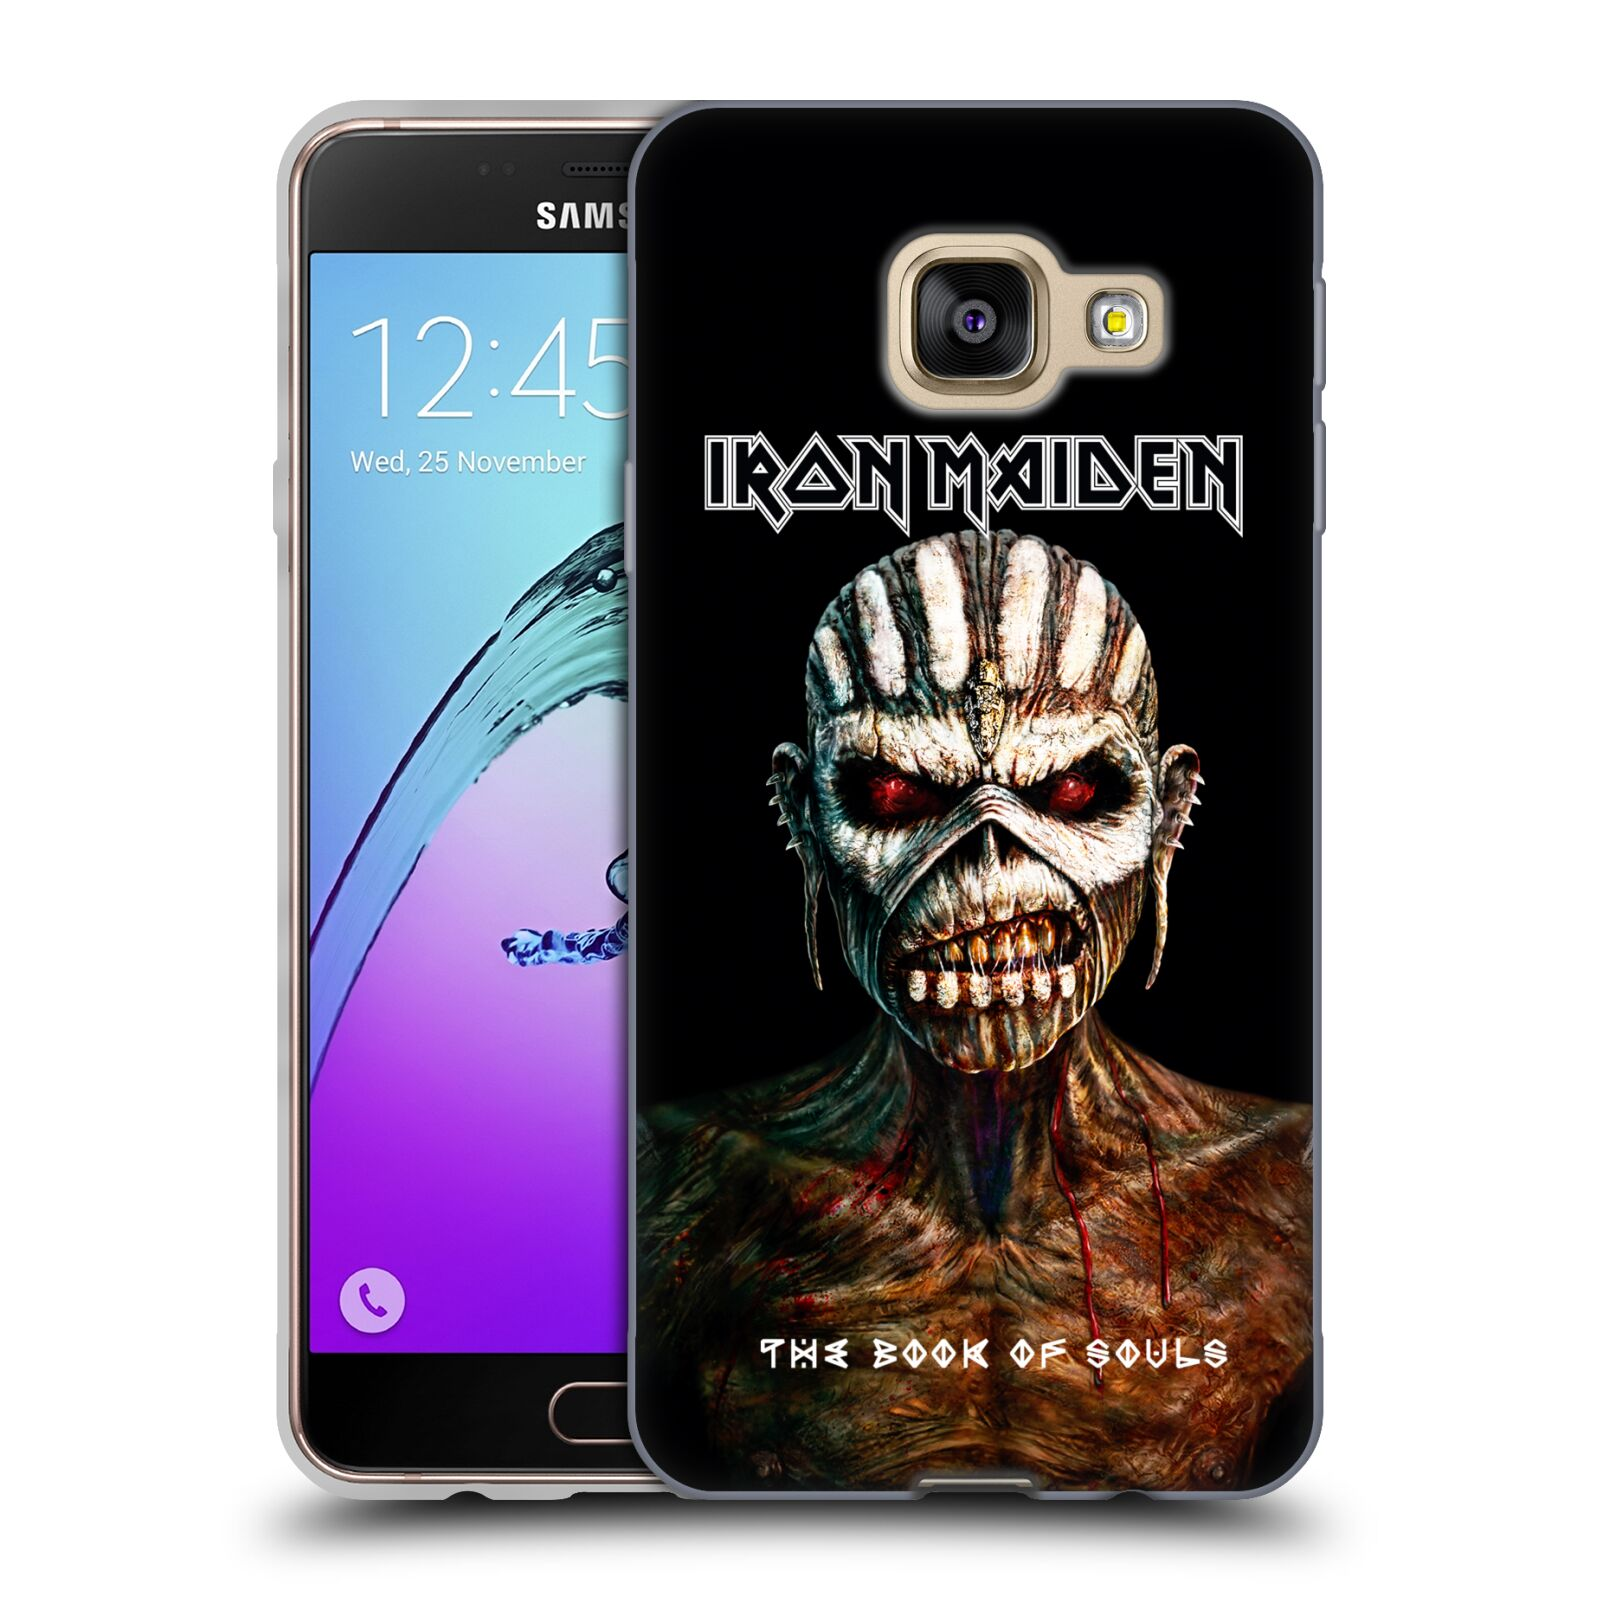 HEAD CASE silikonový obal na mobil Samsung Galaxy A3 2016 (A310) Heavymetalová skupina Iron Maiden The Book Of Souls